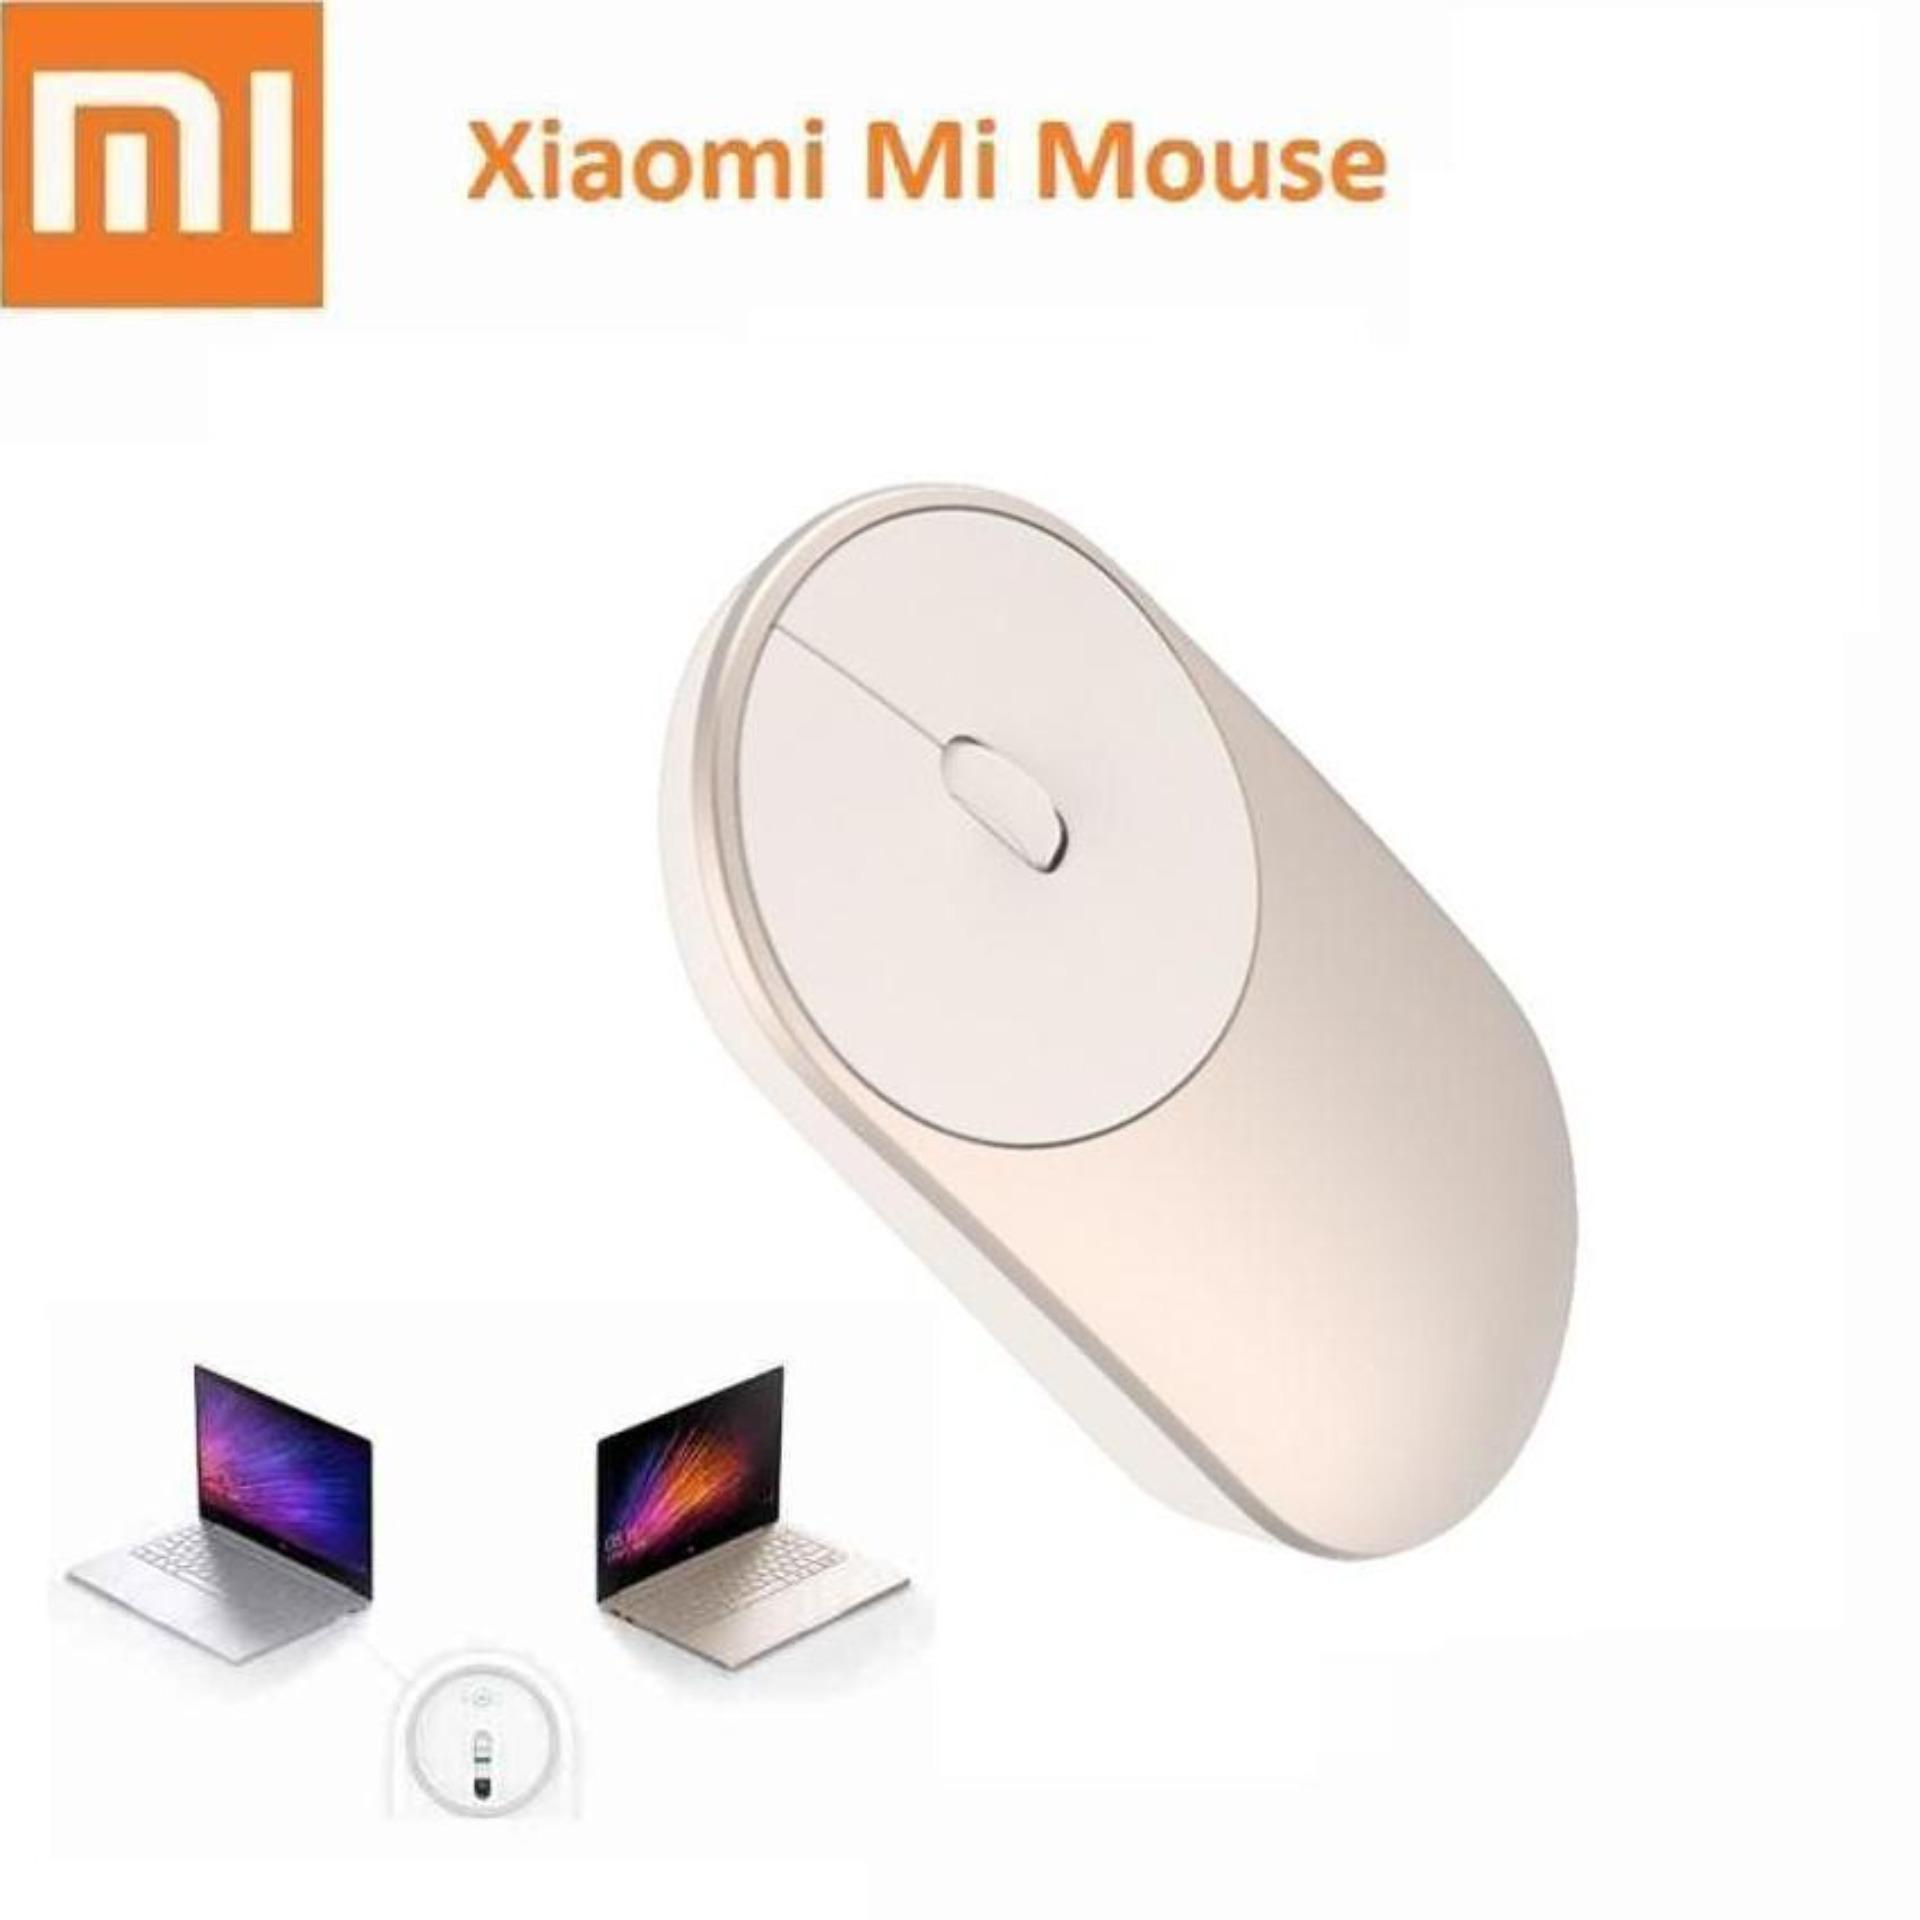 Harga Saya Xiaomi Mi Mouse With Wireless Dual Modes Connection Mode